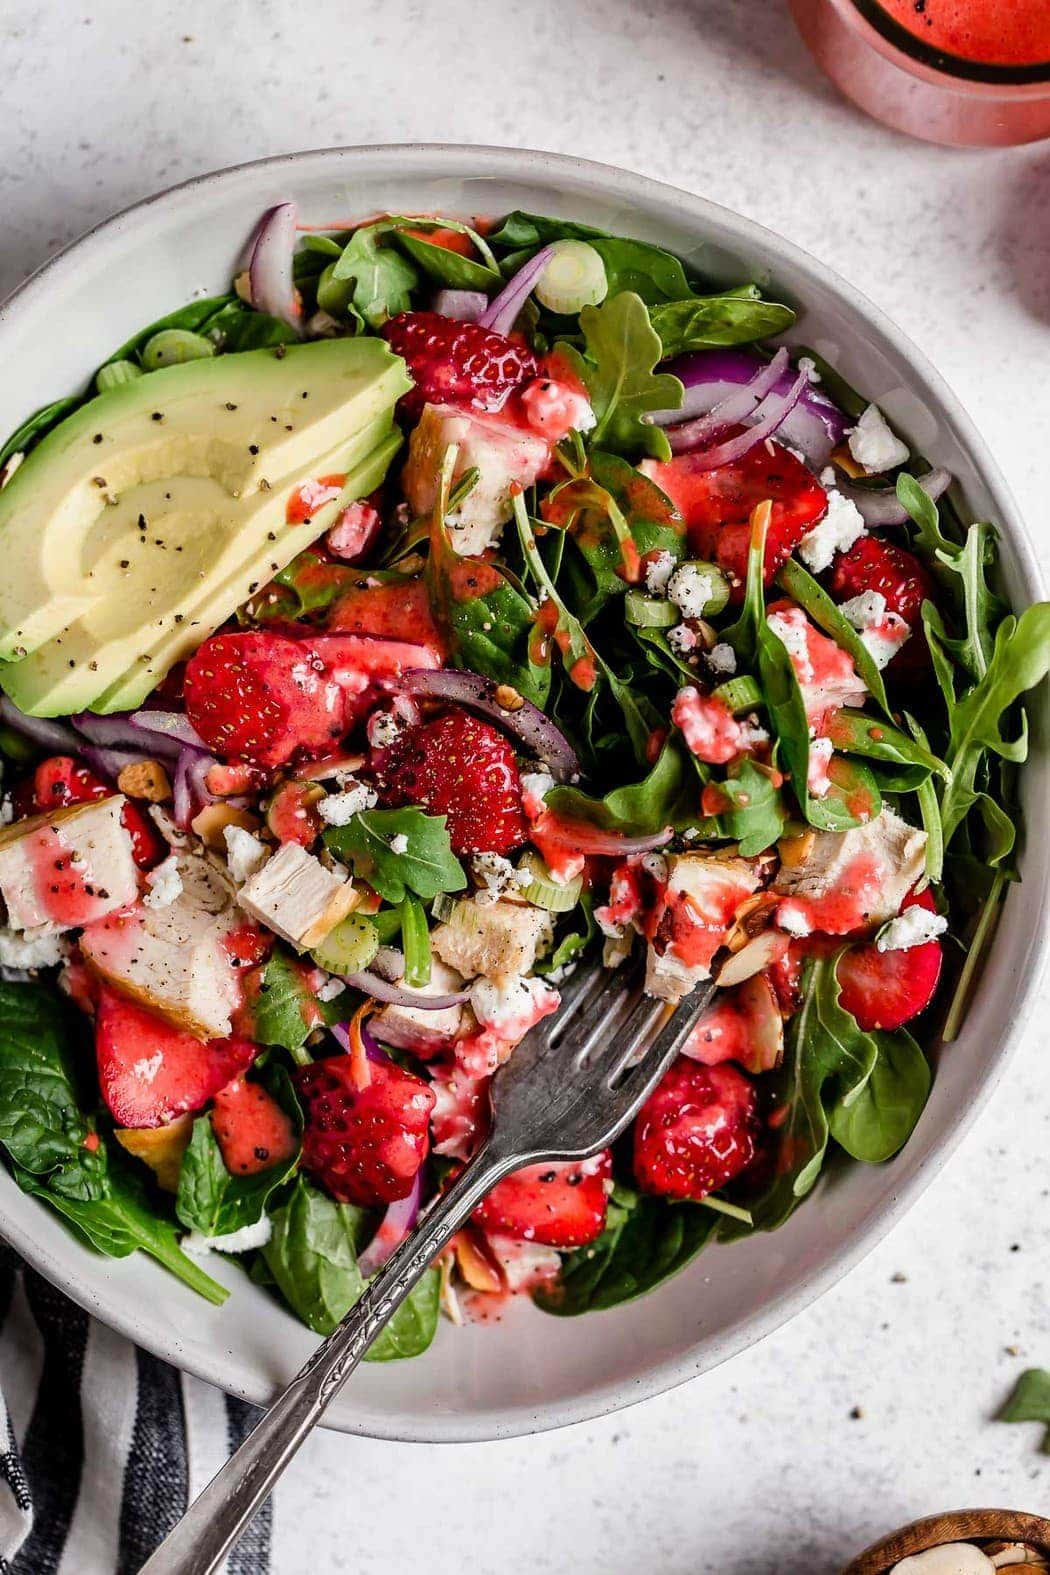 Gorgeous overhead shot of Strawberry Spinach Salad with Chicken in a white bowl. Ingredients include greens, sliced strawberries, chunks of chicken, goat cheese crumbles, avocado slices and red onion slices.